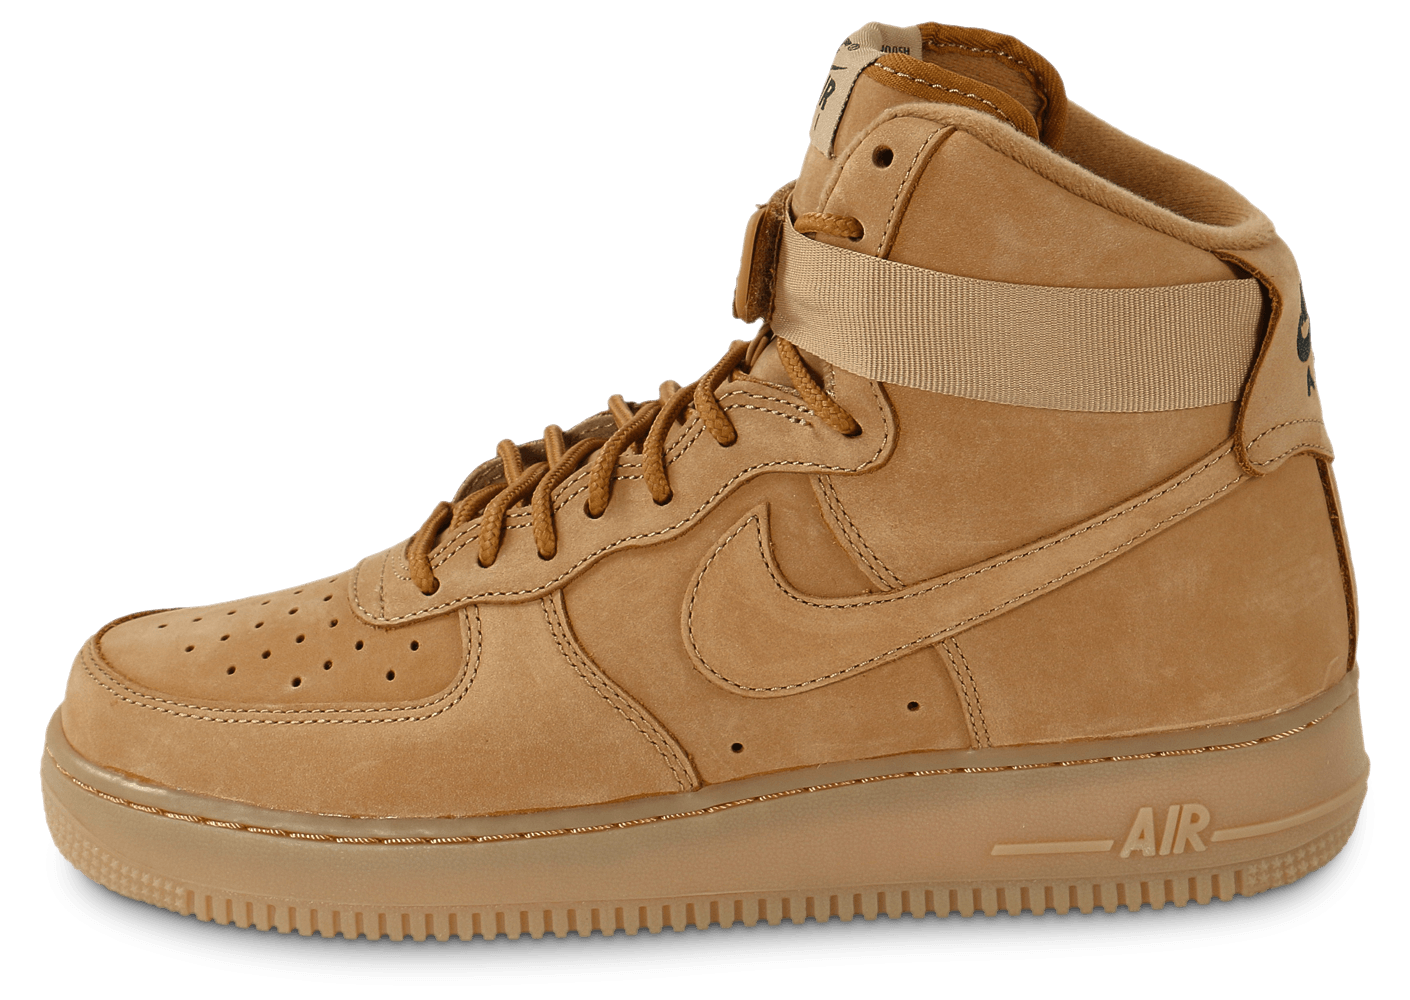 nike air force 1 high 39 07 lv8 flax chaussures homme. Black Bedroom Furniture Sets. Home Design Ideas